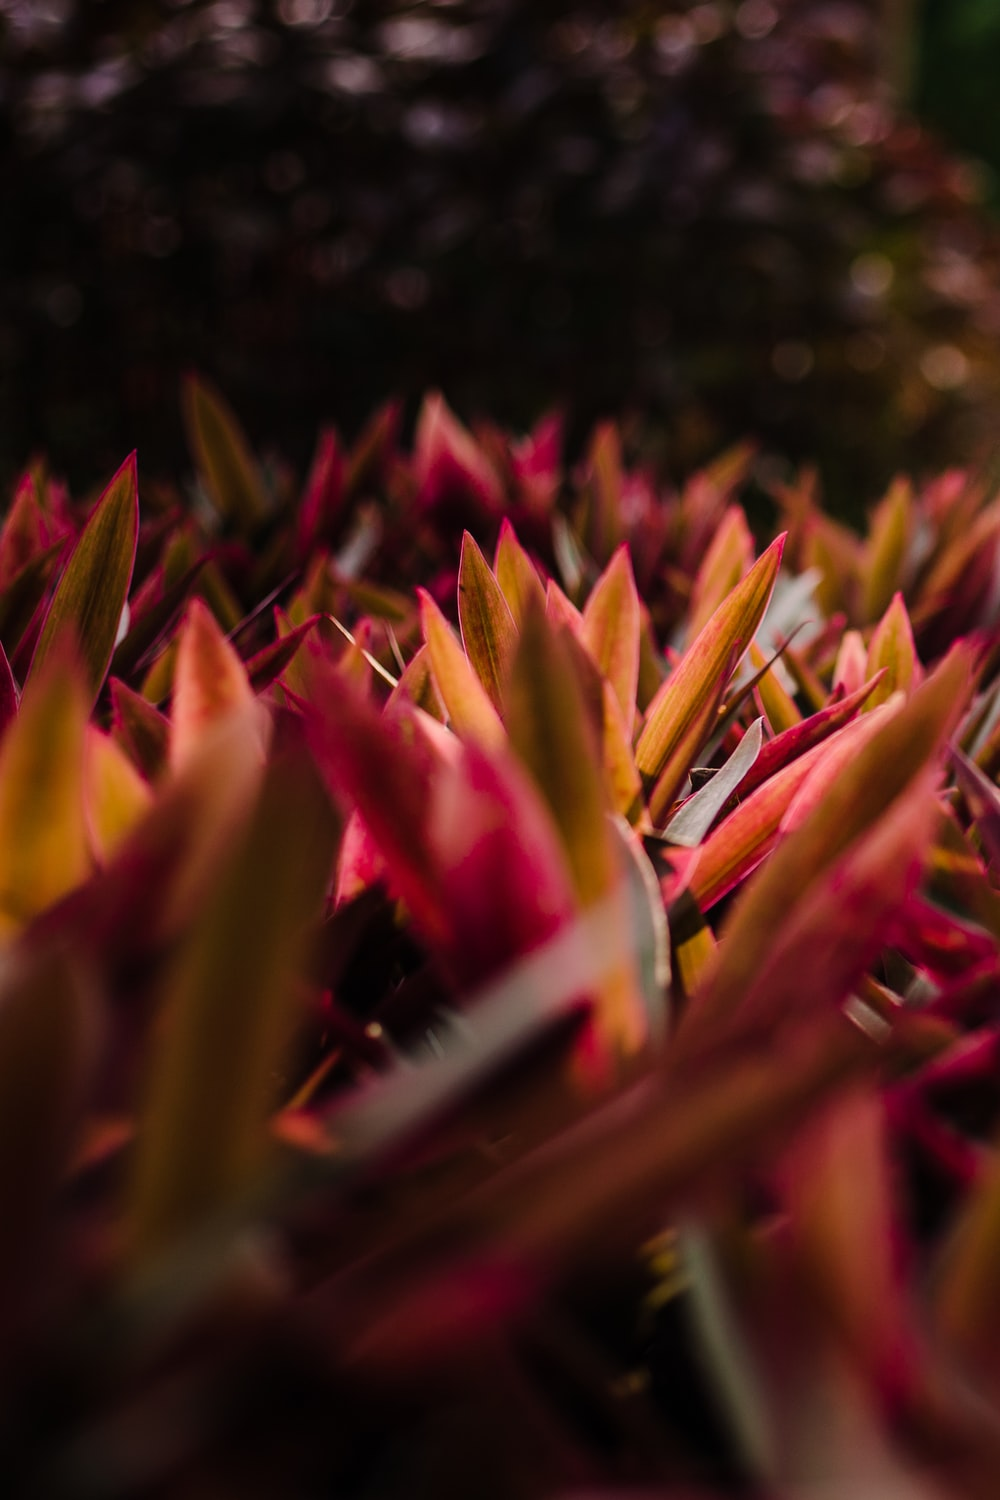 closeup photography of pink-and-brown leafed plants